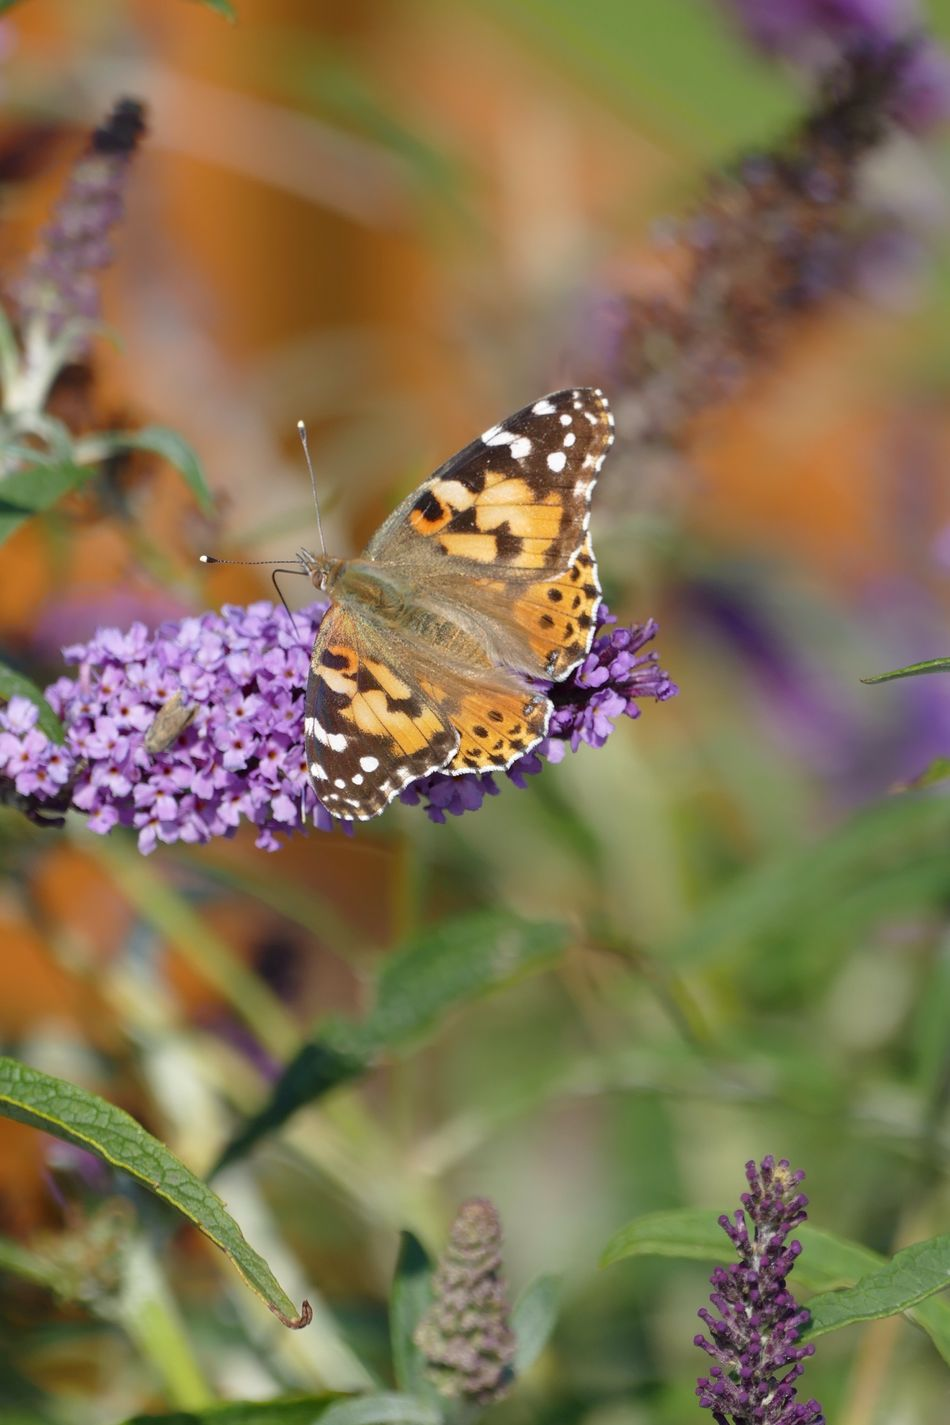 Flowers, Nature And Beauty Nature Photography Nature On Your Doorstep Natures Diversities Nature's Diversities Flowers,Plants & Garden Butterfly Butterflies Butterfly Collection Nature Painted Lady Painted Lady Butterfly Vanessa Cardui